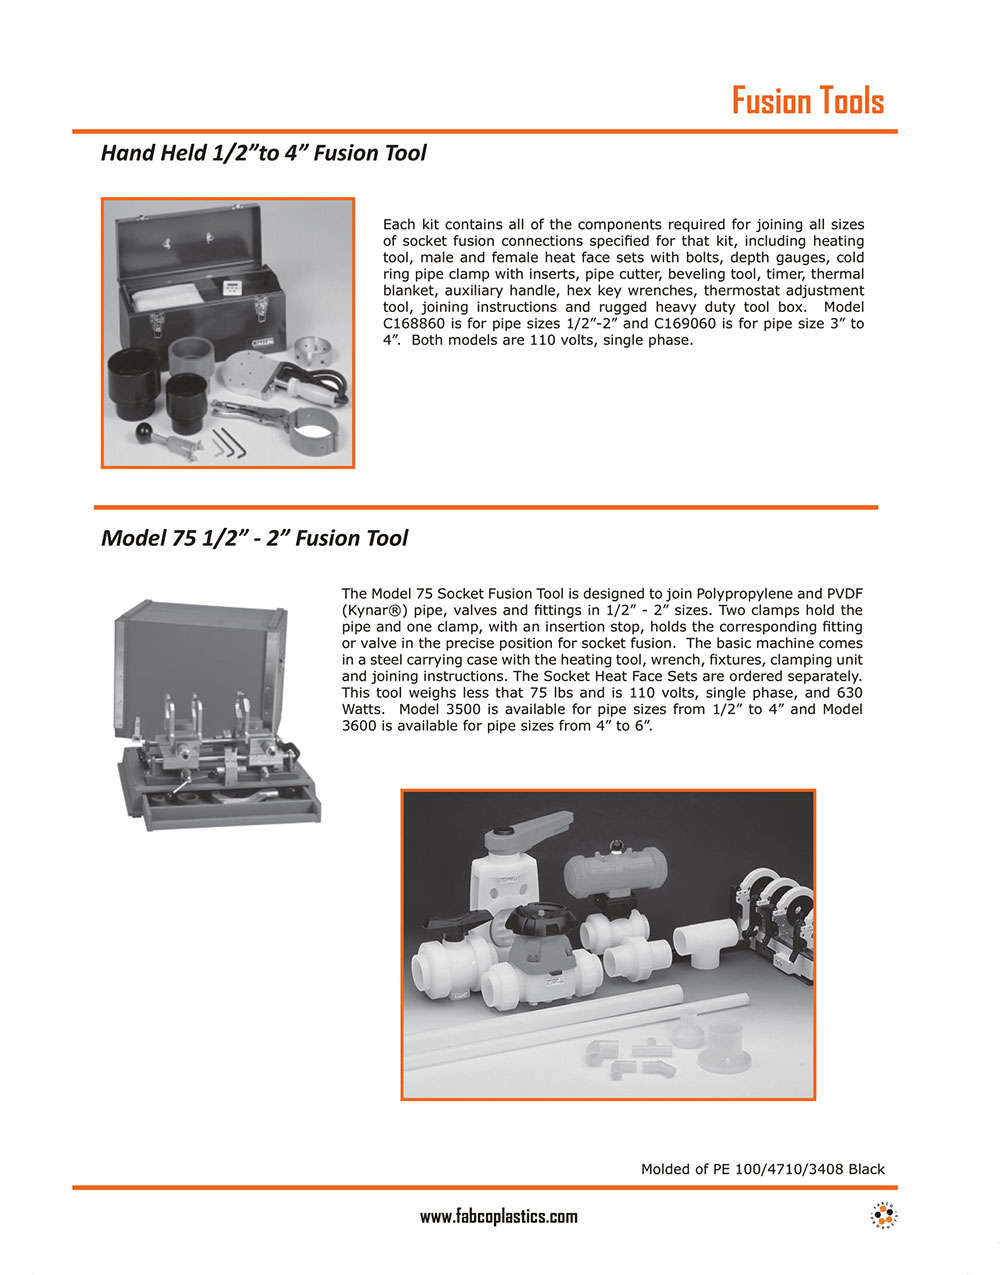 Pipe Cutters and Bevelers